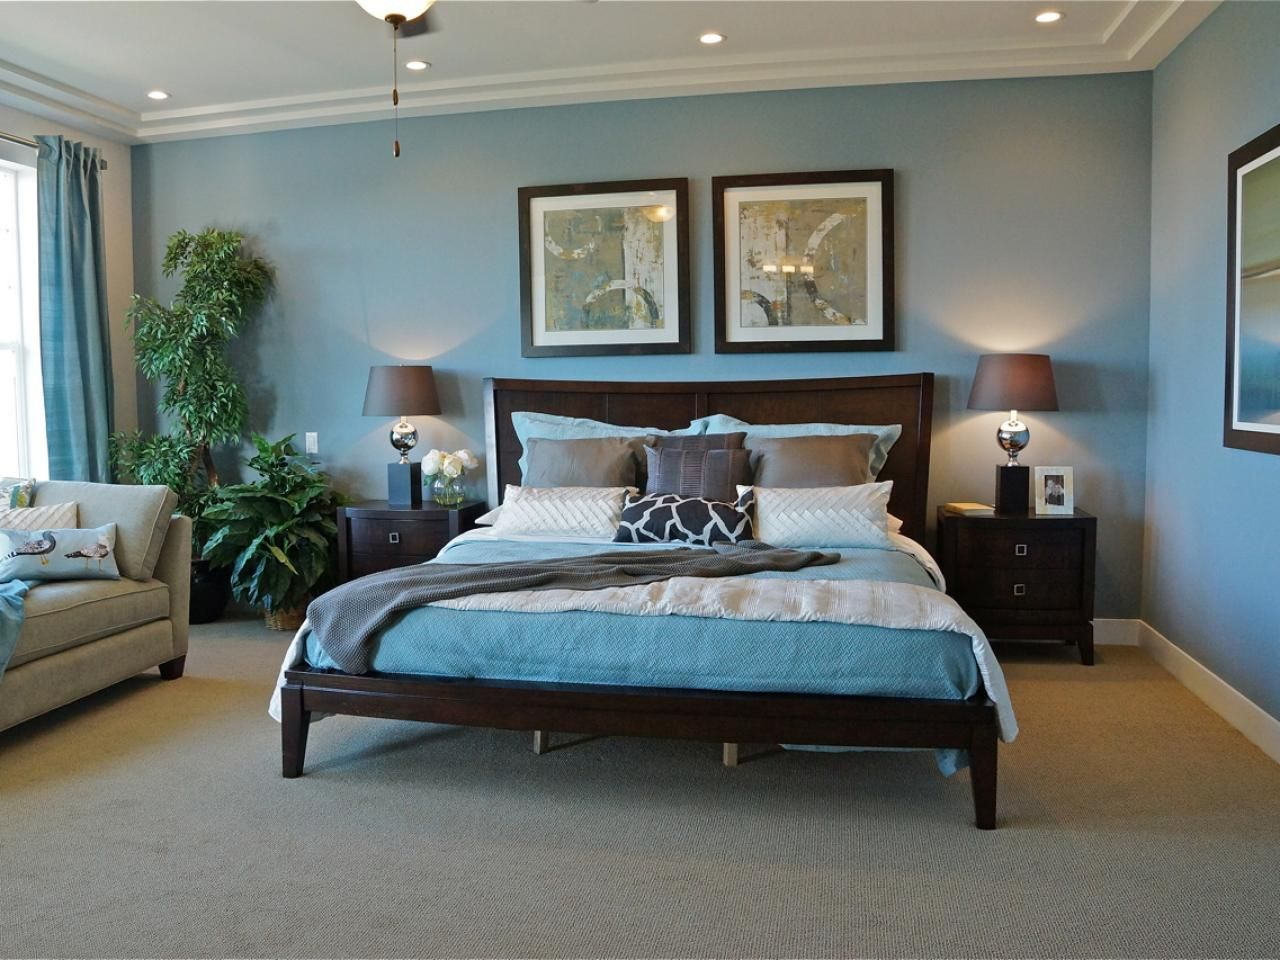 soothing and stately this traditional bedroom pairs dark wood furniture with soft blue walls. Black Bedroom Furniture Sets. Home Design Ideas